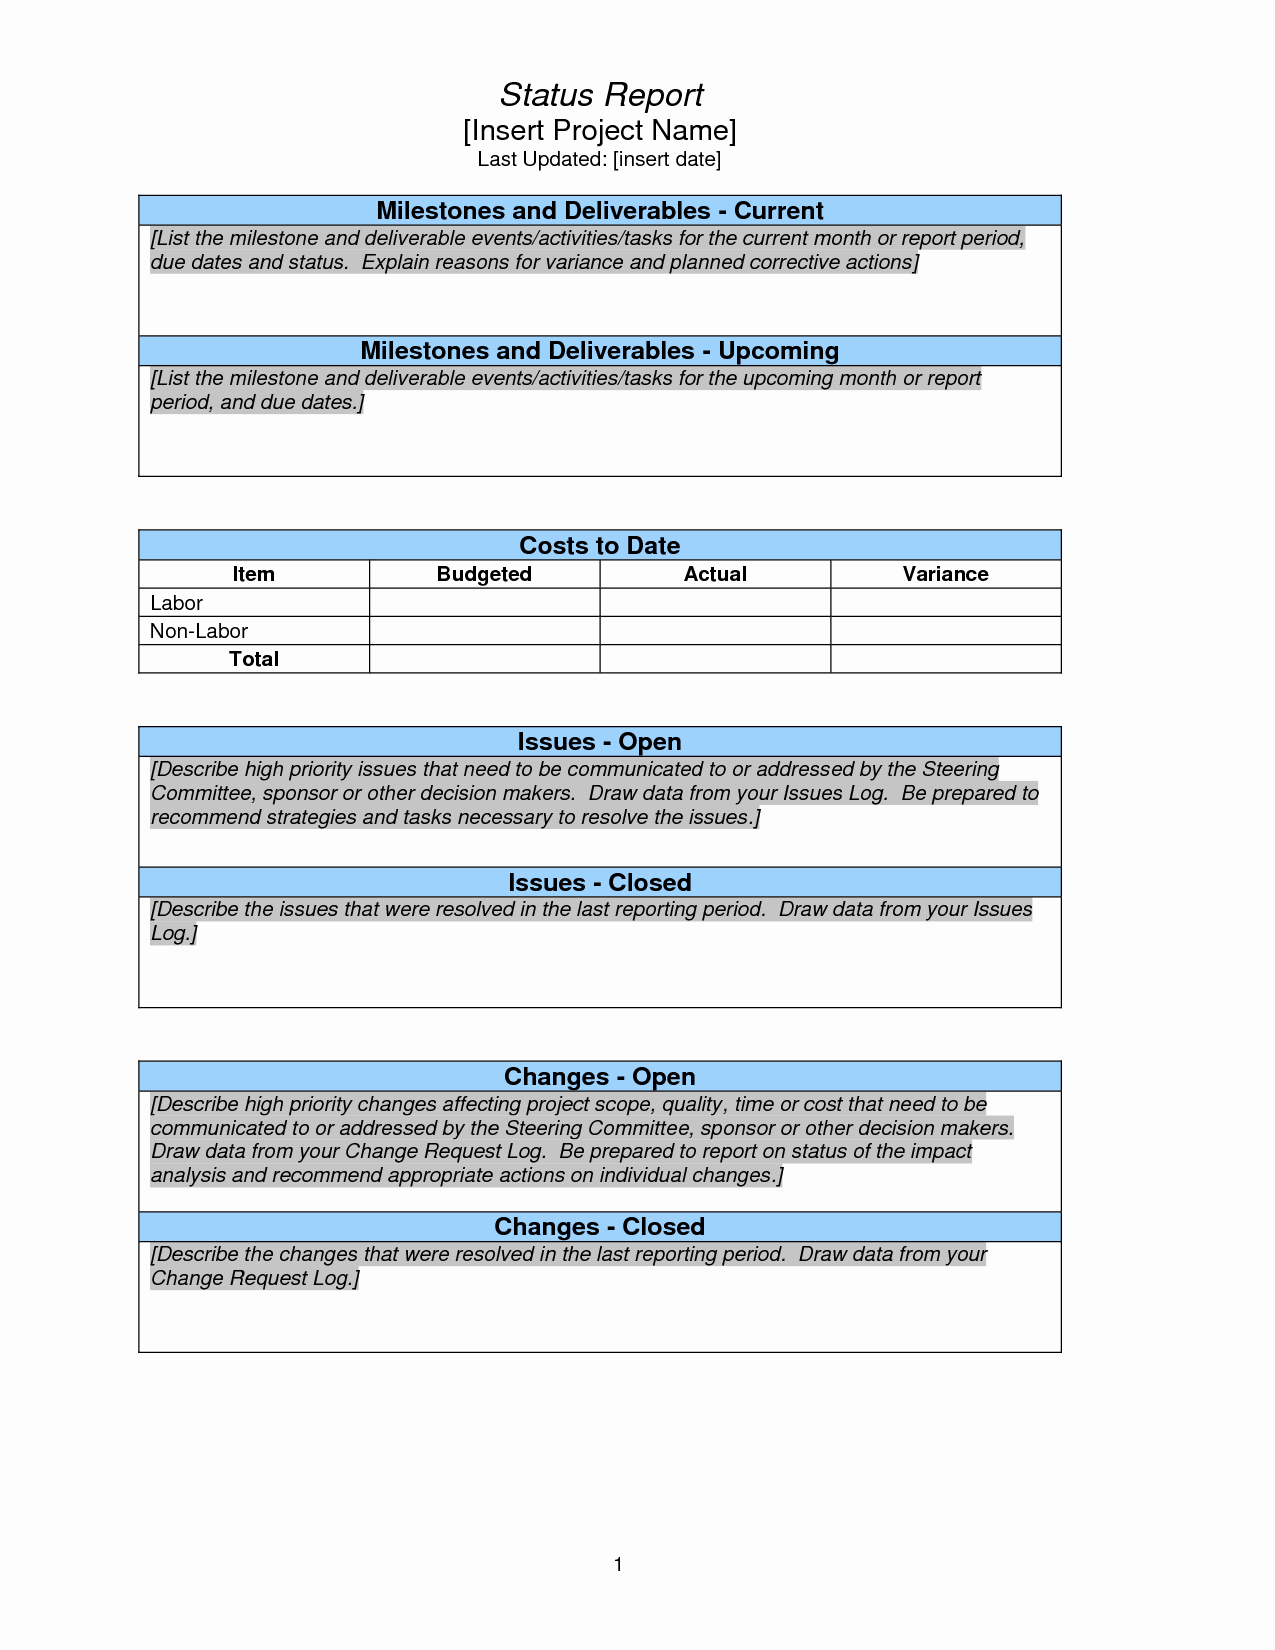 Program Management Status Report Template Beautiful Weekly Project Status Report Sample Google Search